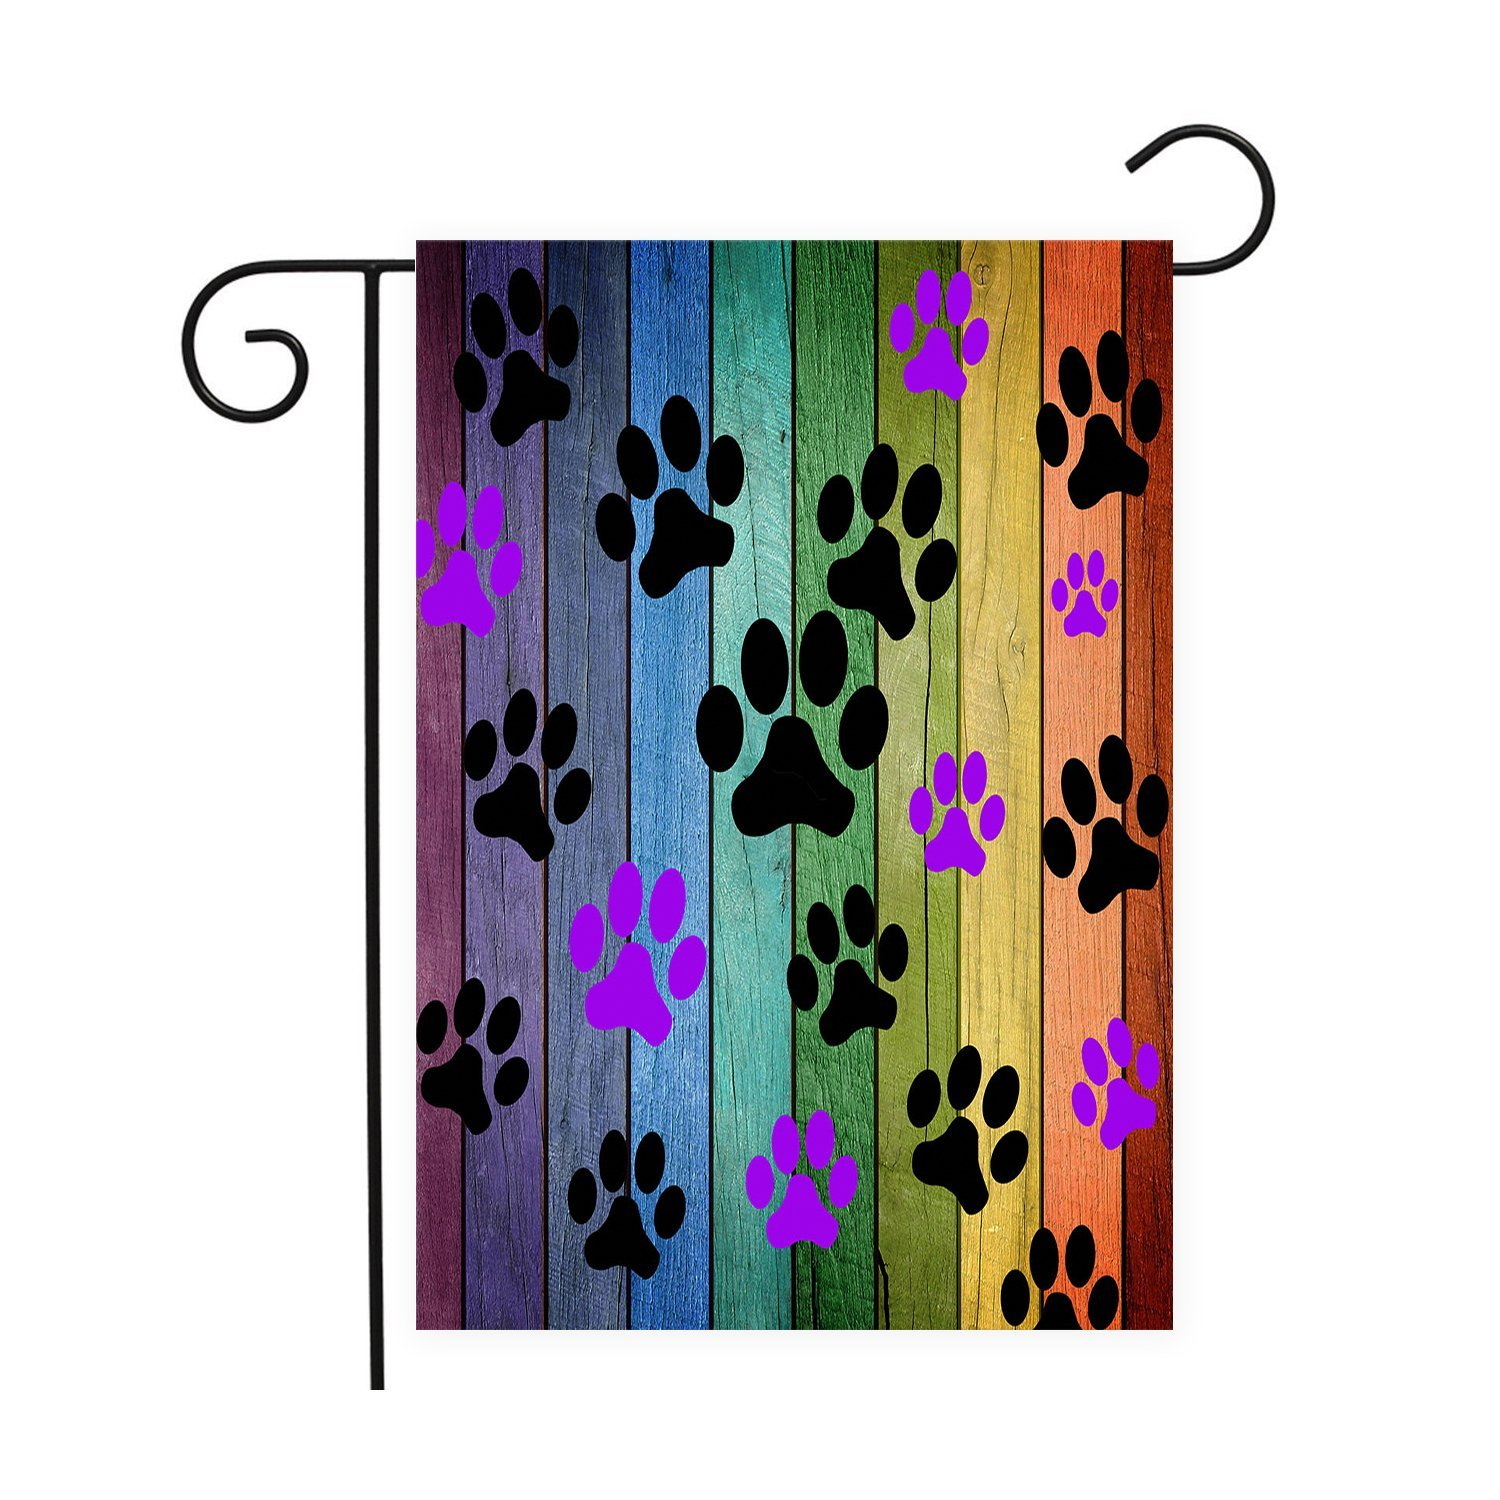 Dog Paw Prints Rustic Old Barn Wood Garden Flags House Decor Mini Yard  Banner,100% Polyester In Flags, Banners U0026 Accessories From Home U0026 Garden On  ...